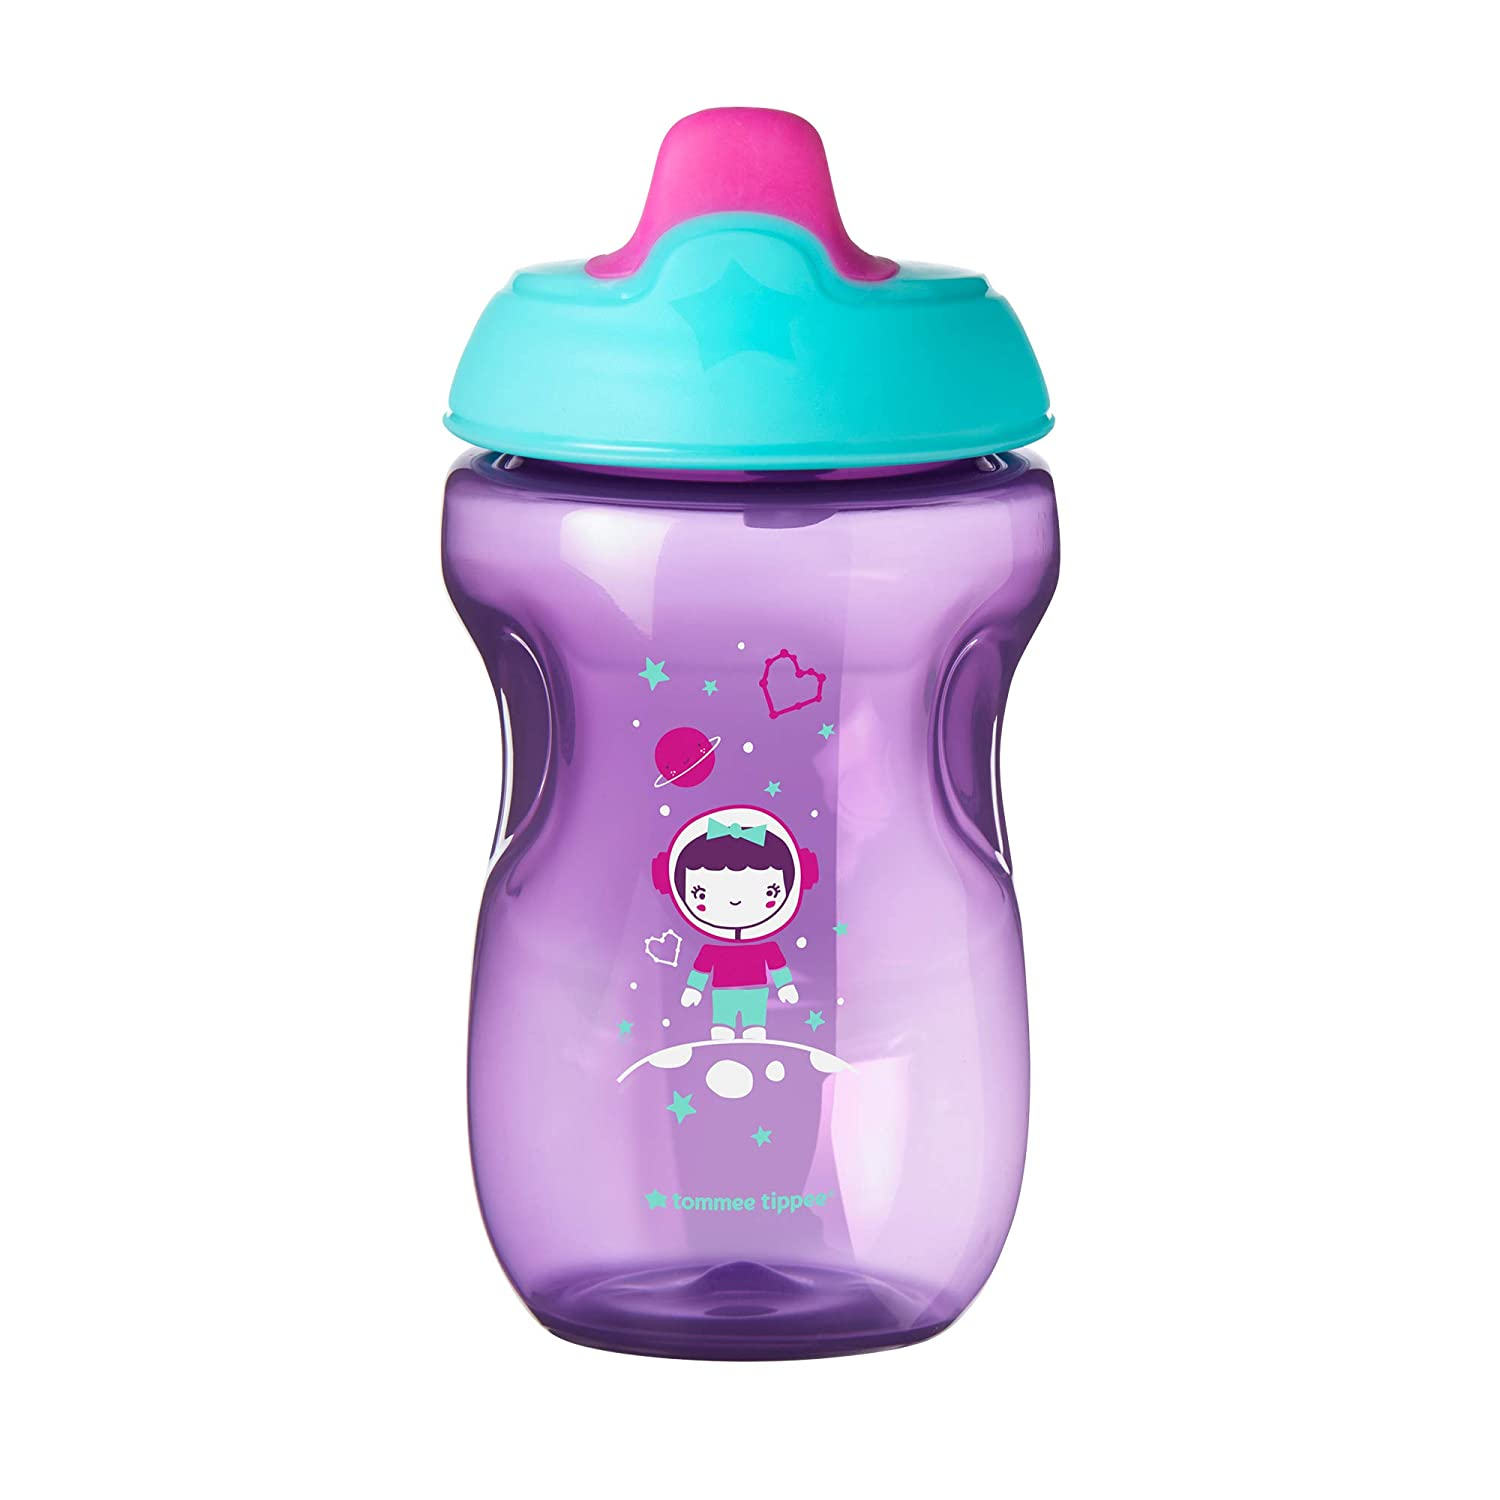 Tommee Tippee Non-Spill Toddler Sippee Cup, 9+ Months, 10 Oz, 3 Count, Girl, Pink/Purple/Green : Baby